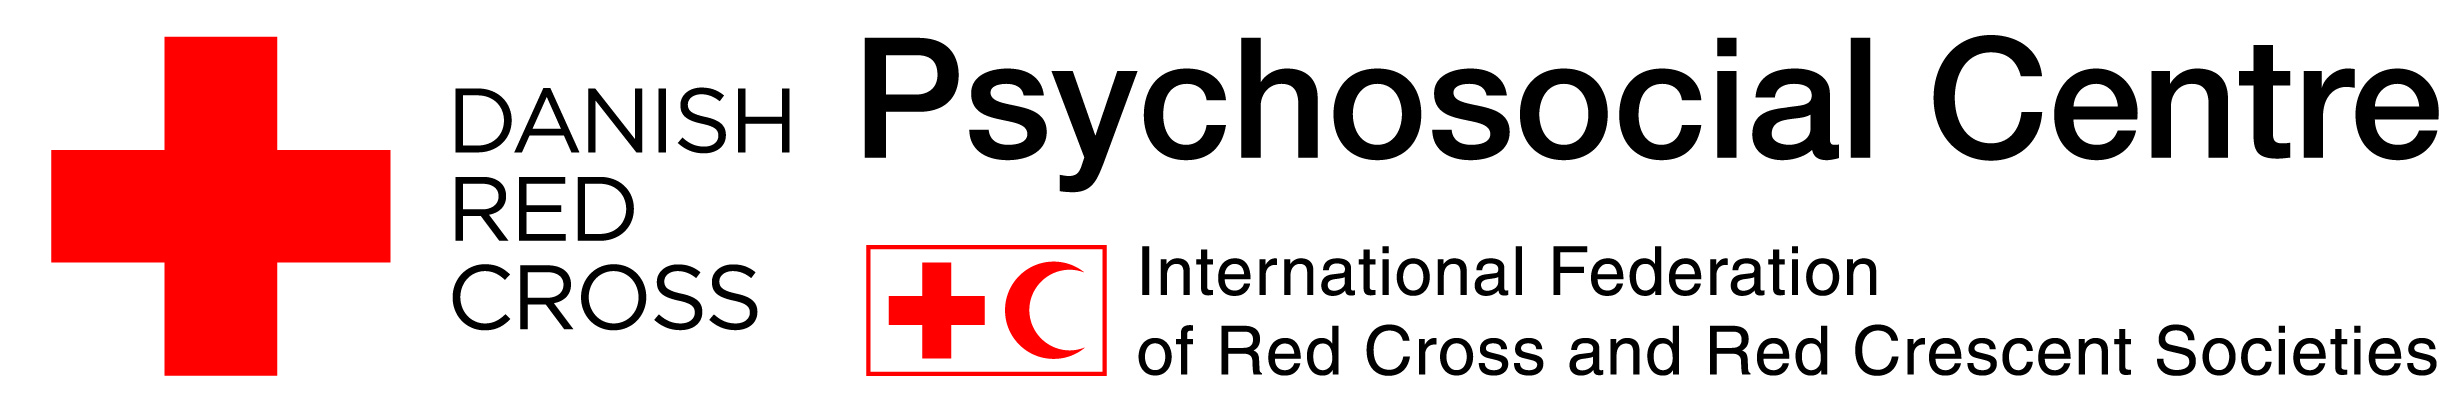 The IFRC Reference Centre for Psychosocial Support, hosted by Danish Red Cross